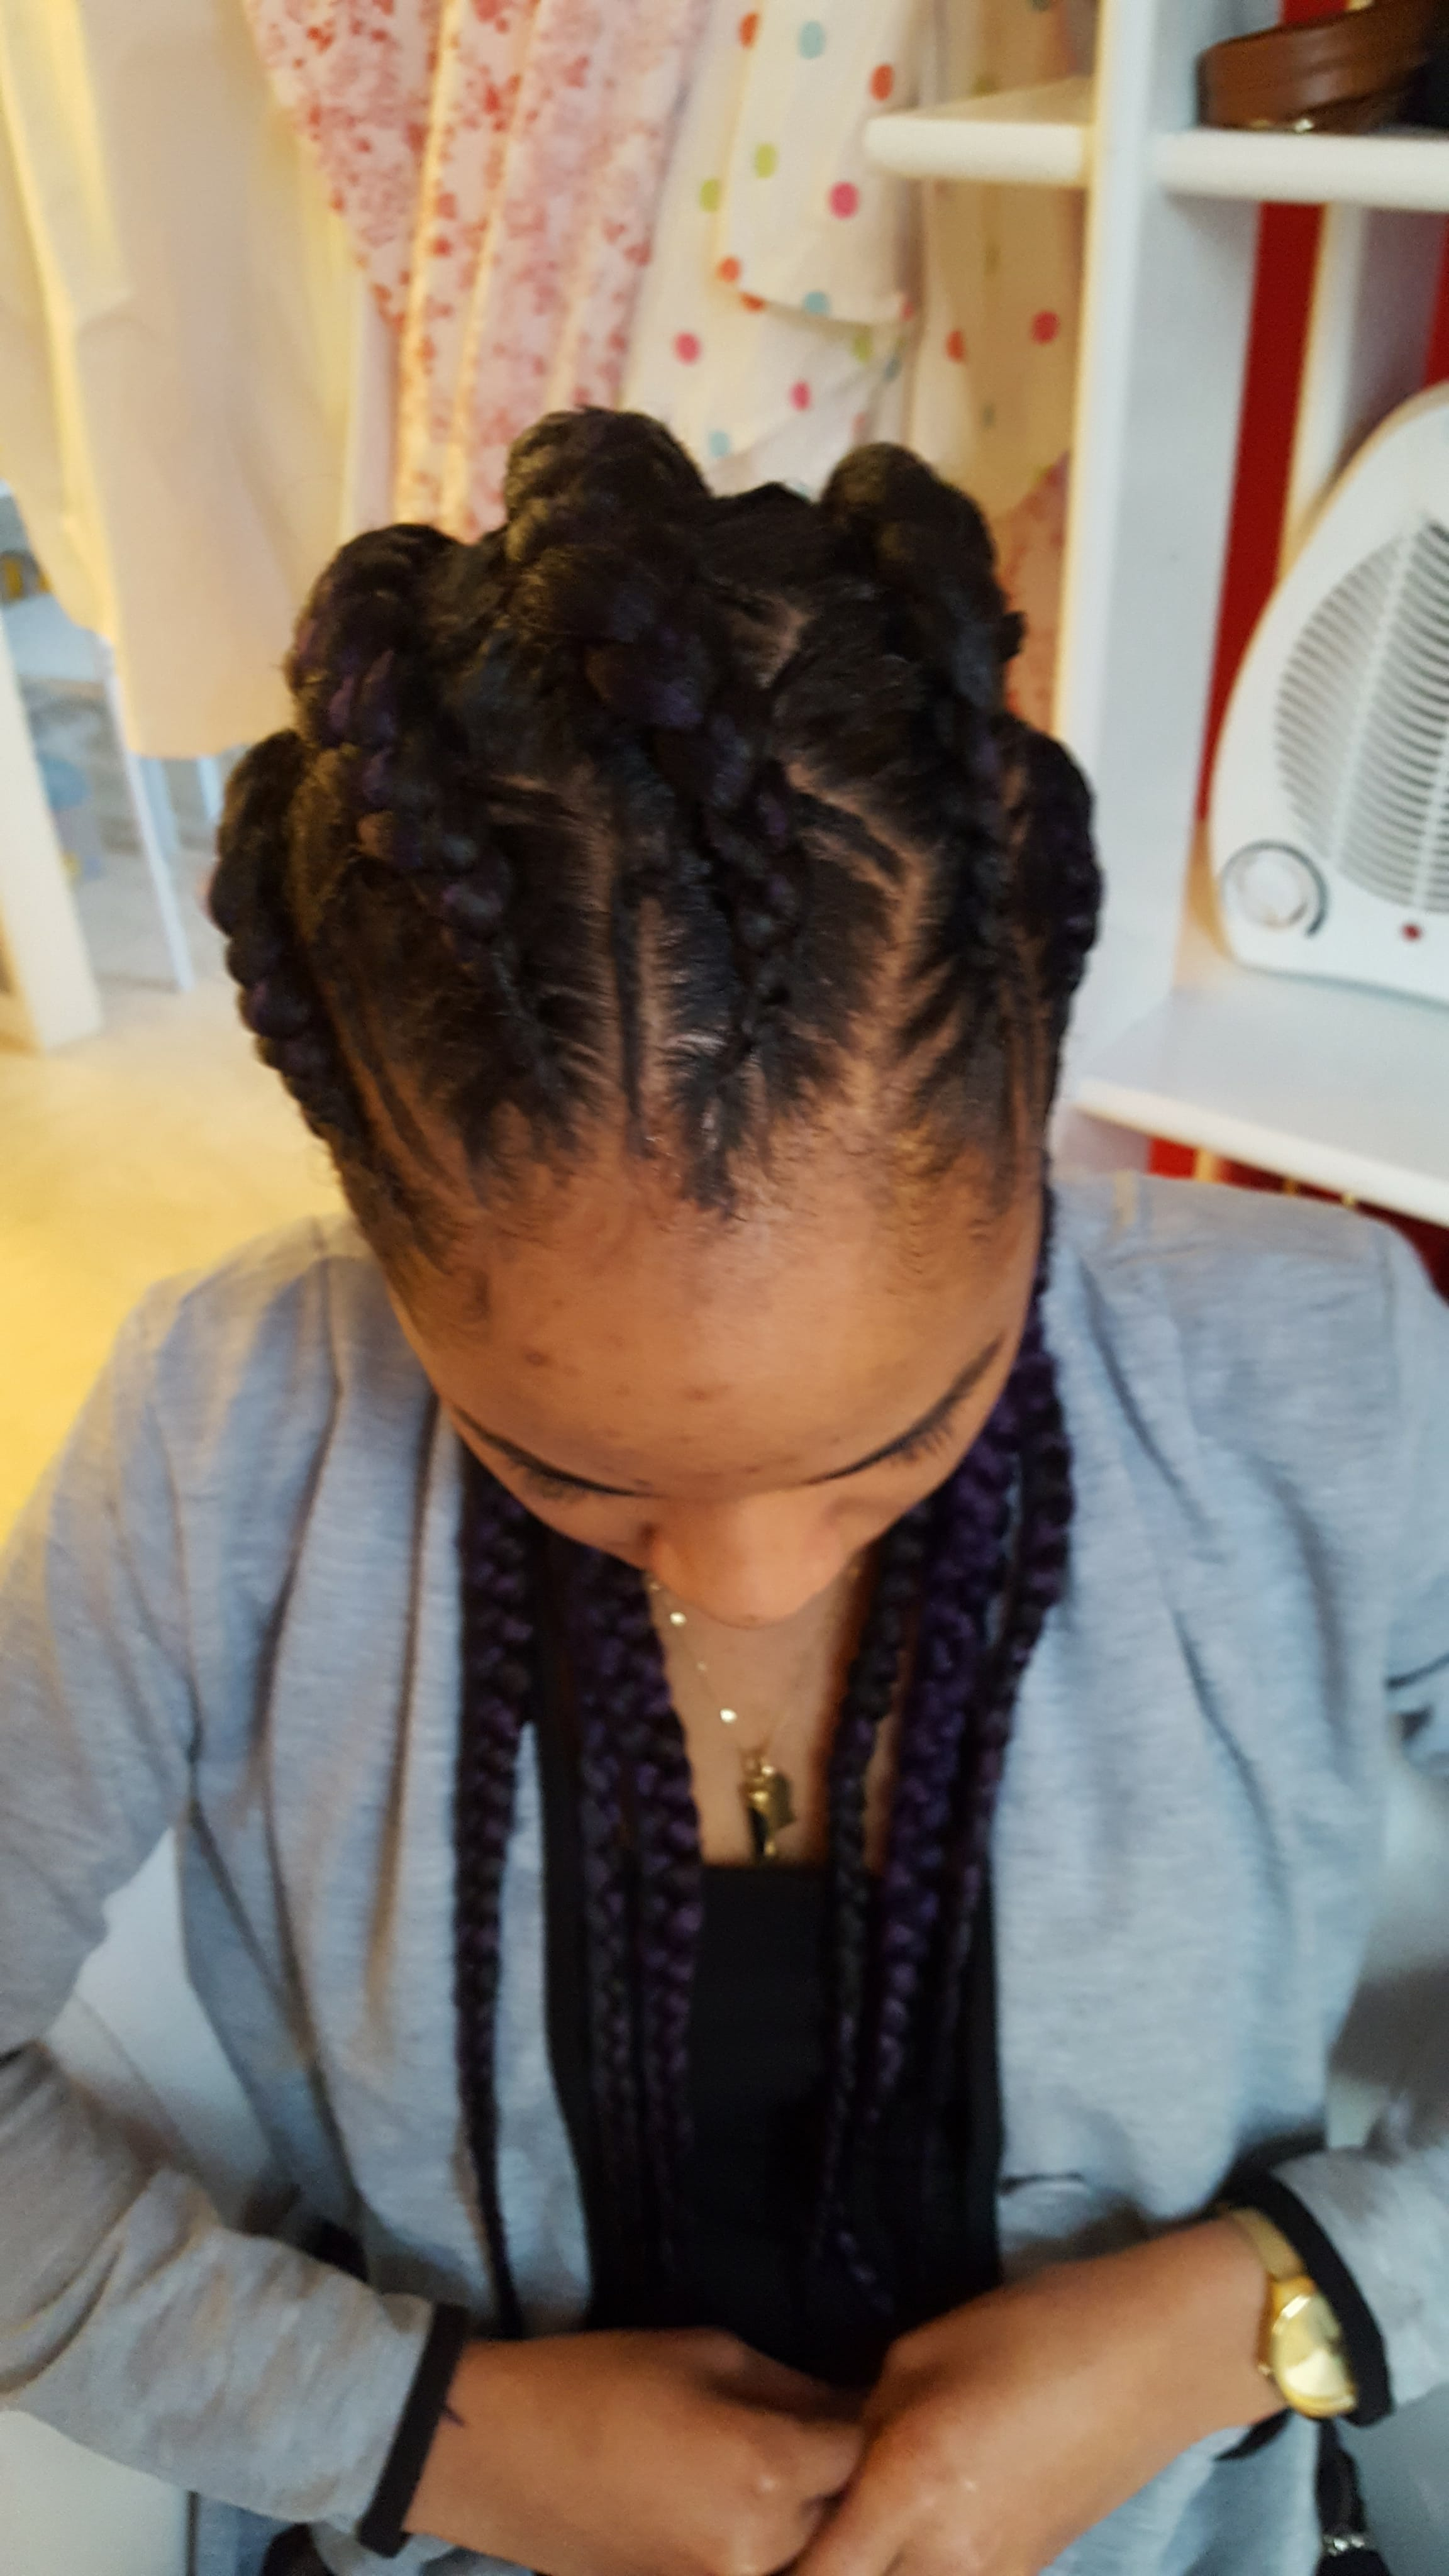 salon de coiffure afro tresse tresses box braids crochet braids vanilles tissages paris 75 77 78 91 92 93 94 95 AADJCNHK